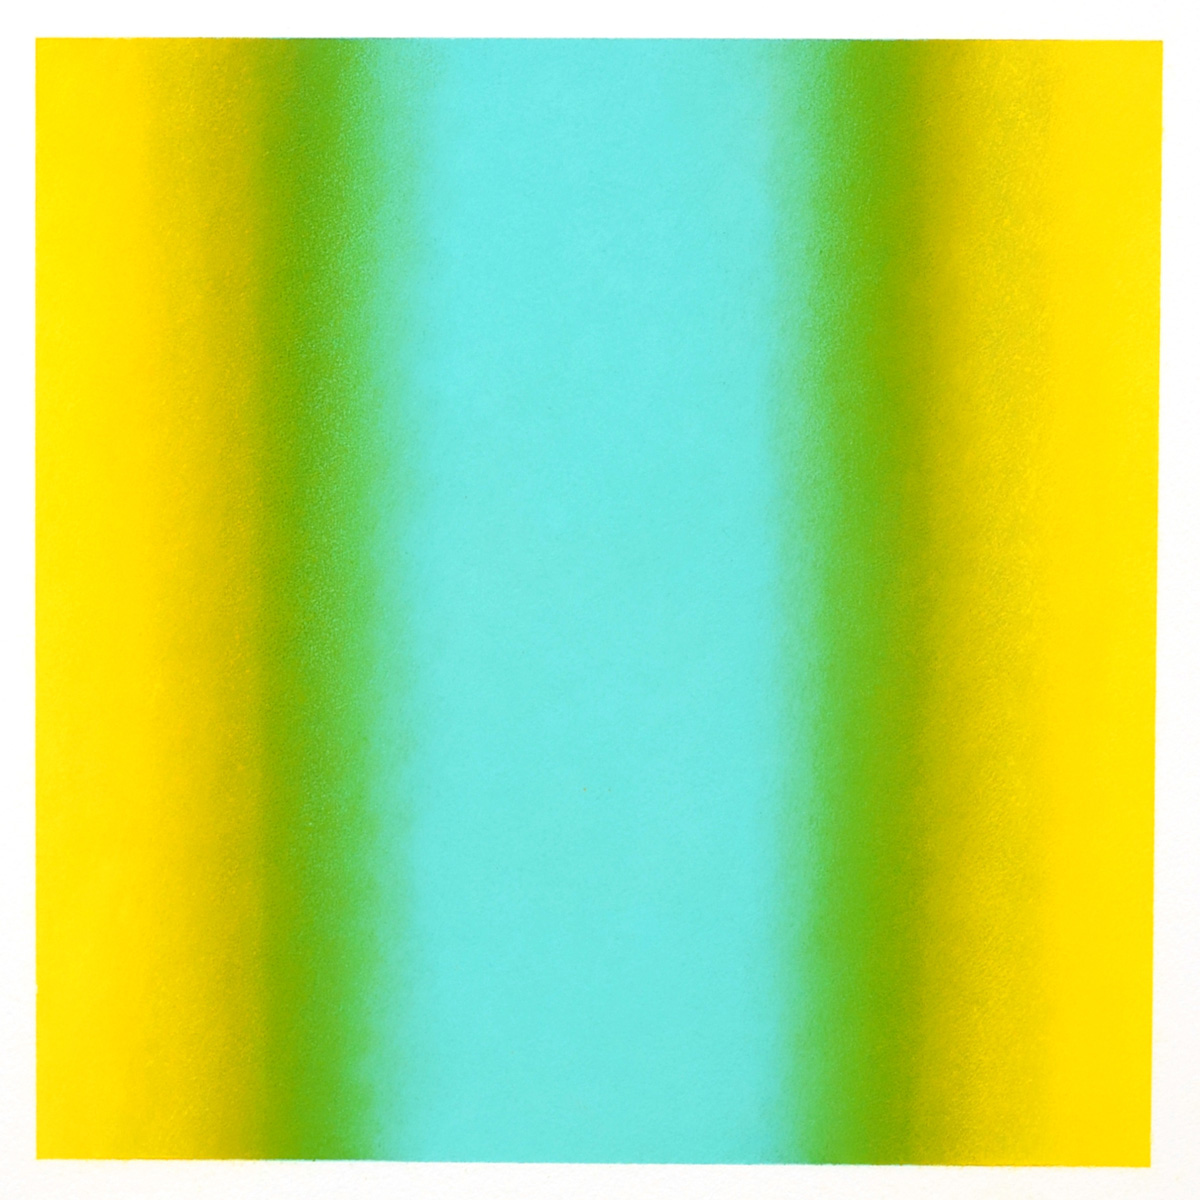 Cool-Light Yellow-Green, Interplay Series, 2012, pastel on paper, image: 14 x 14 in. (36 x 36 cm.), sheet: 30 x 22 in. (76 x 56 cm.)